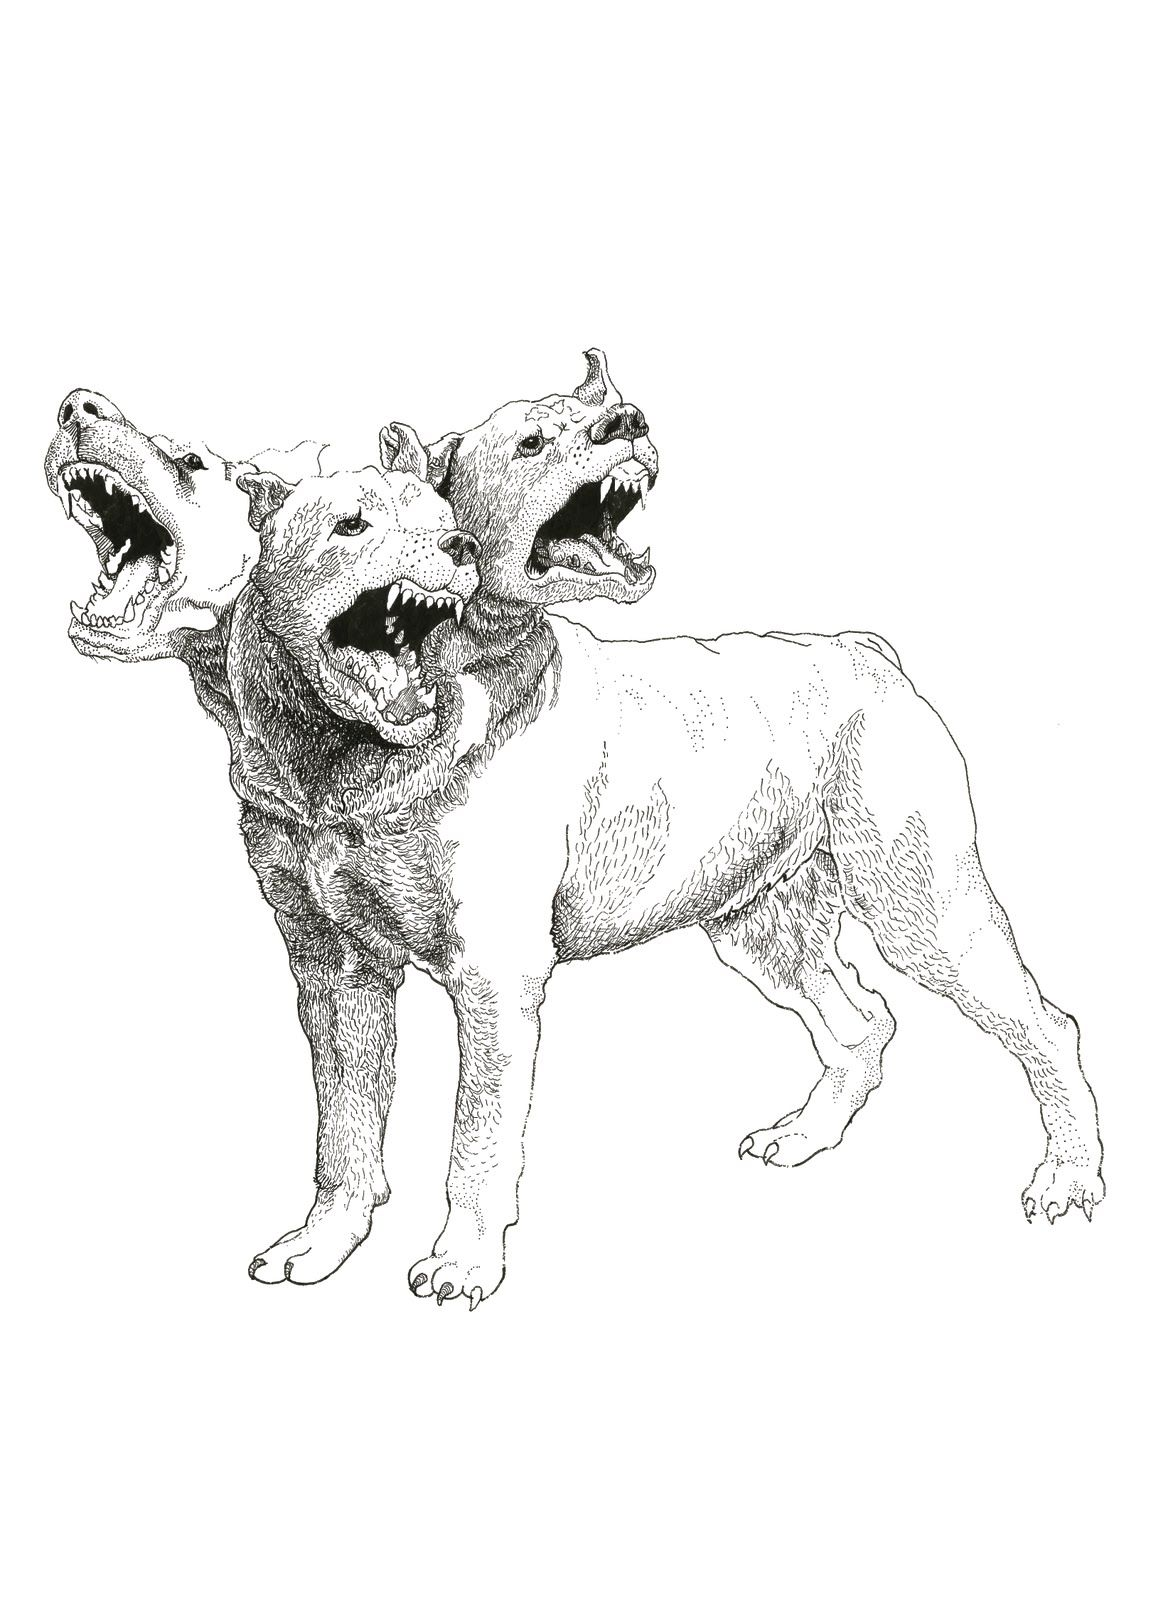 Cerberus , In Greek And Roman Mythology, Is A Multi-headed